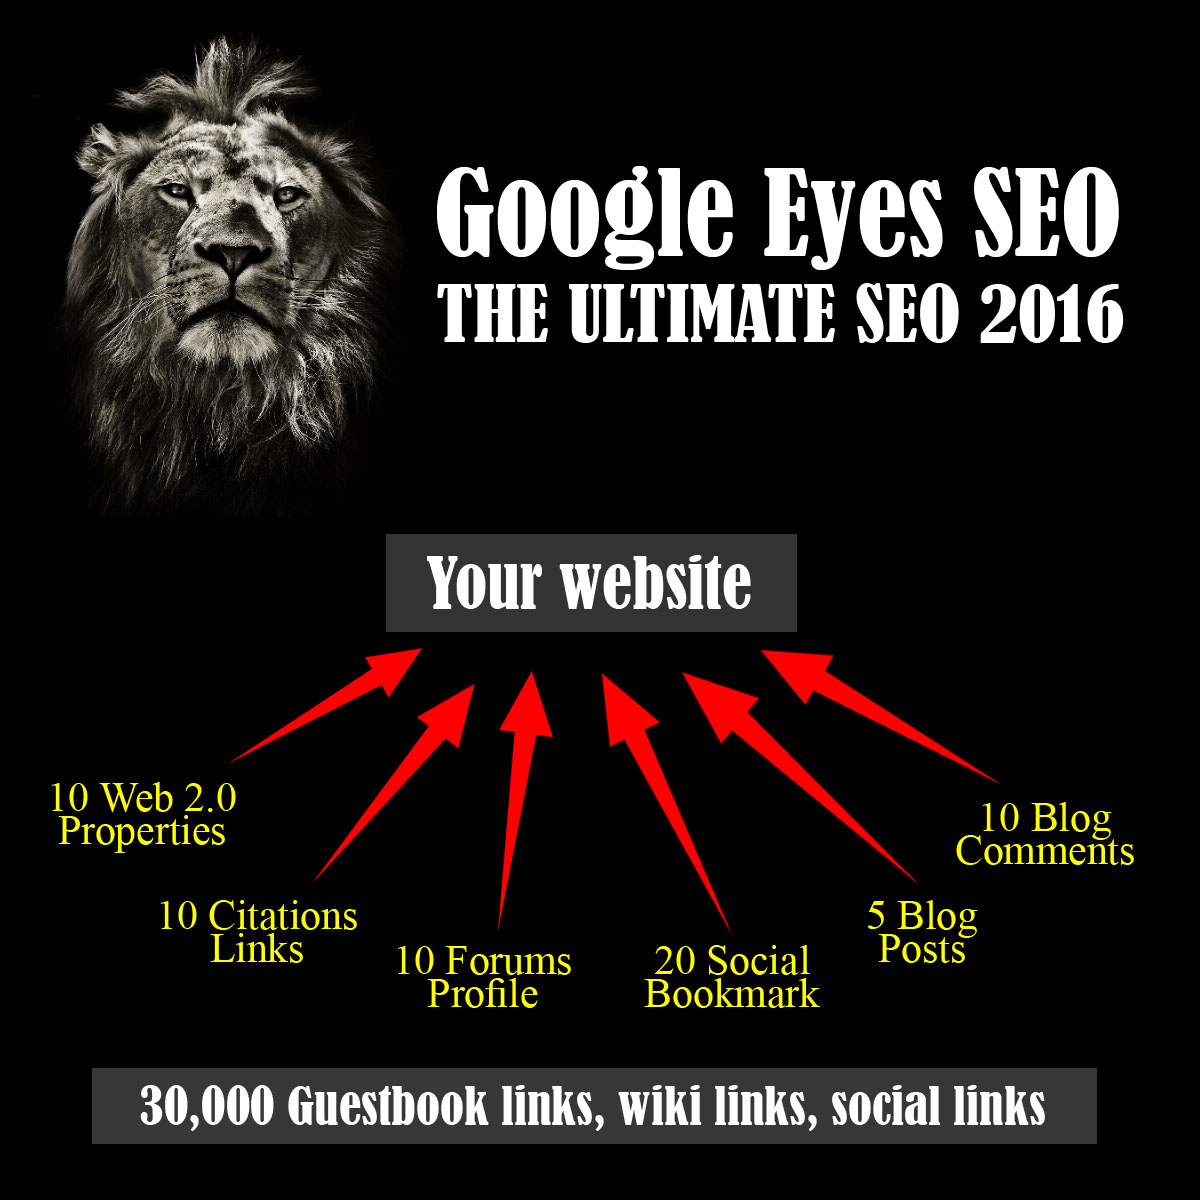 Google Eyes SEO 2016: Ultimate SEO Package to BOOST Your Ranking